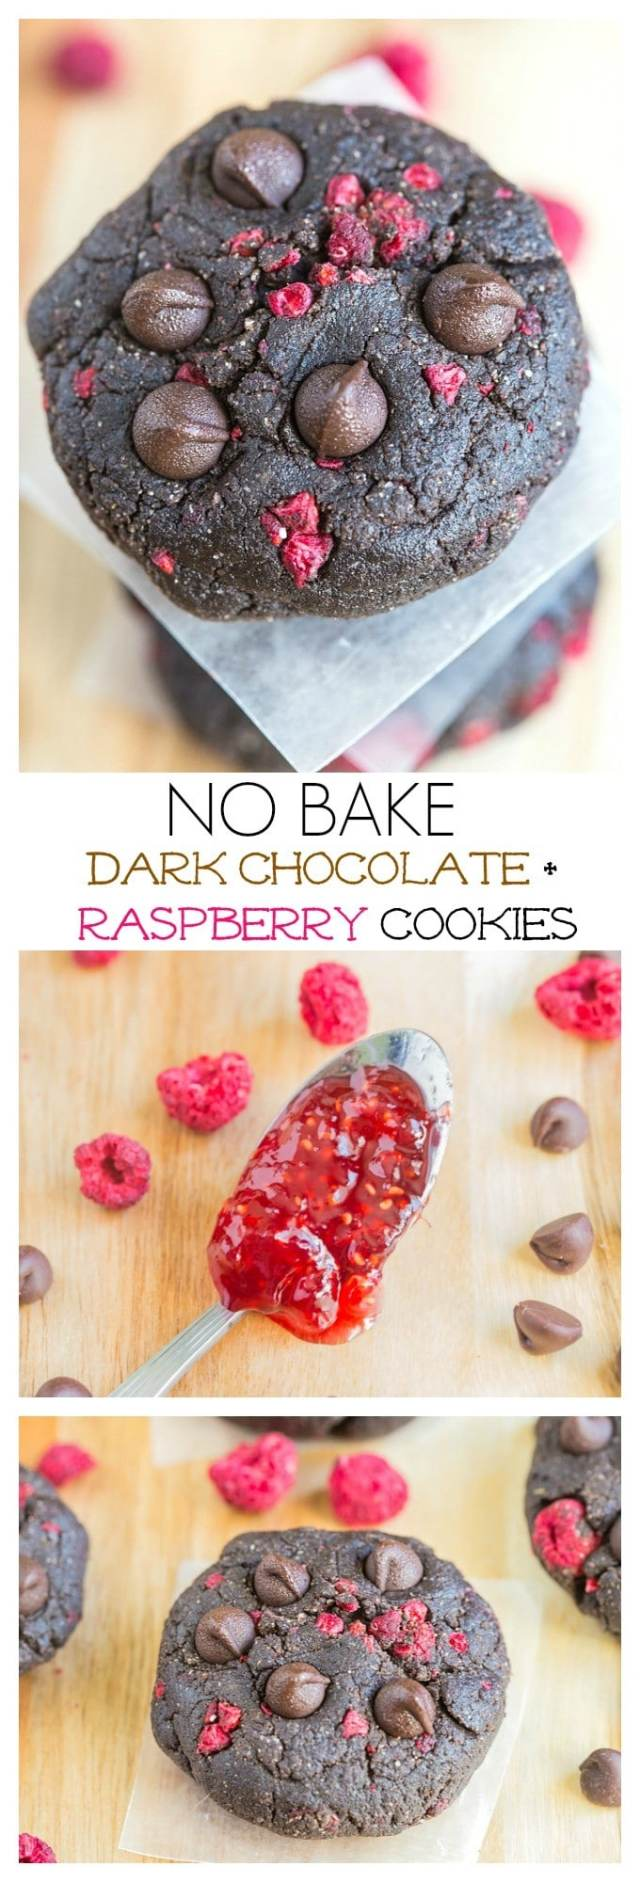 Healthy No Bake Dark Chocolate + Raspberry Cookies- Ready in 10 minutes, these delicious healthy snacks are vegan, gluten free, refined sugar free and have a paleo and high protein option! @thebiigmansworld - thebigmansworld.com